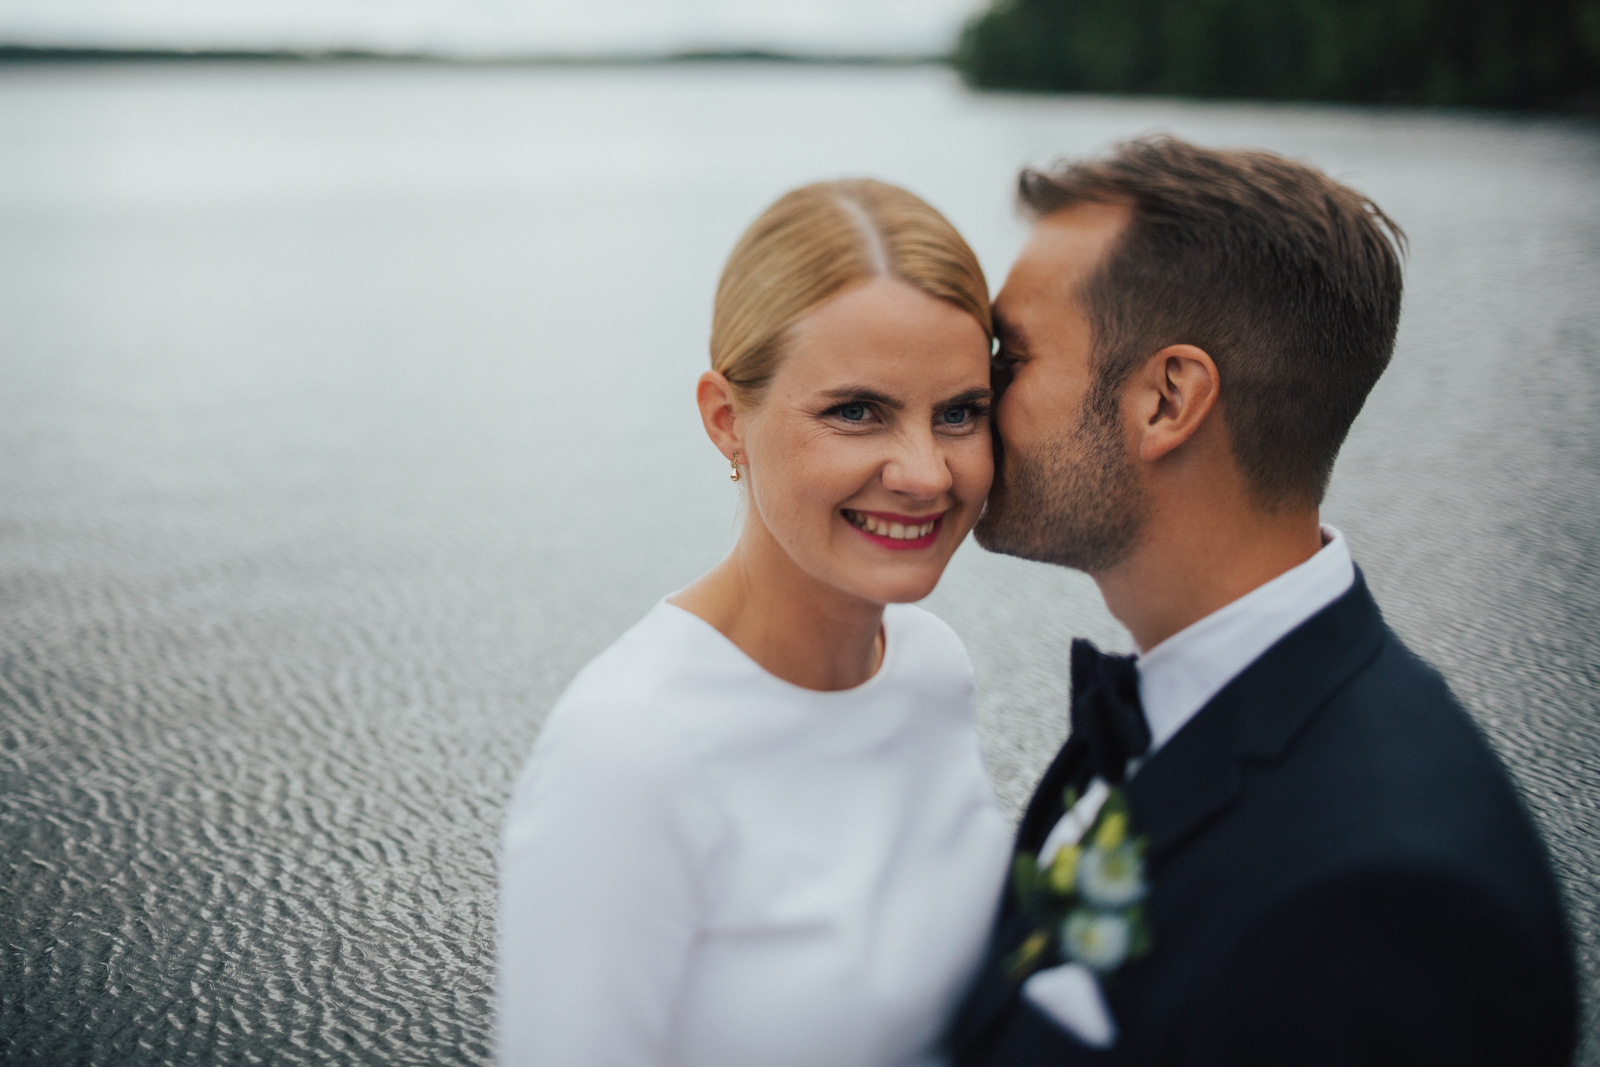 tranås - WEDDING